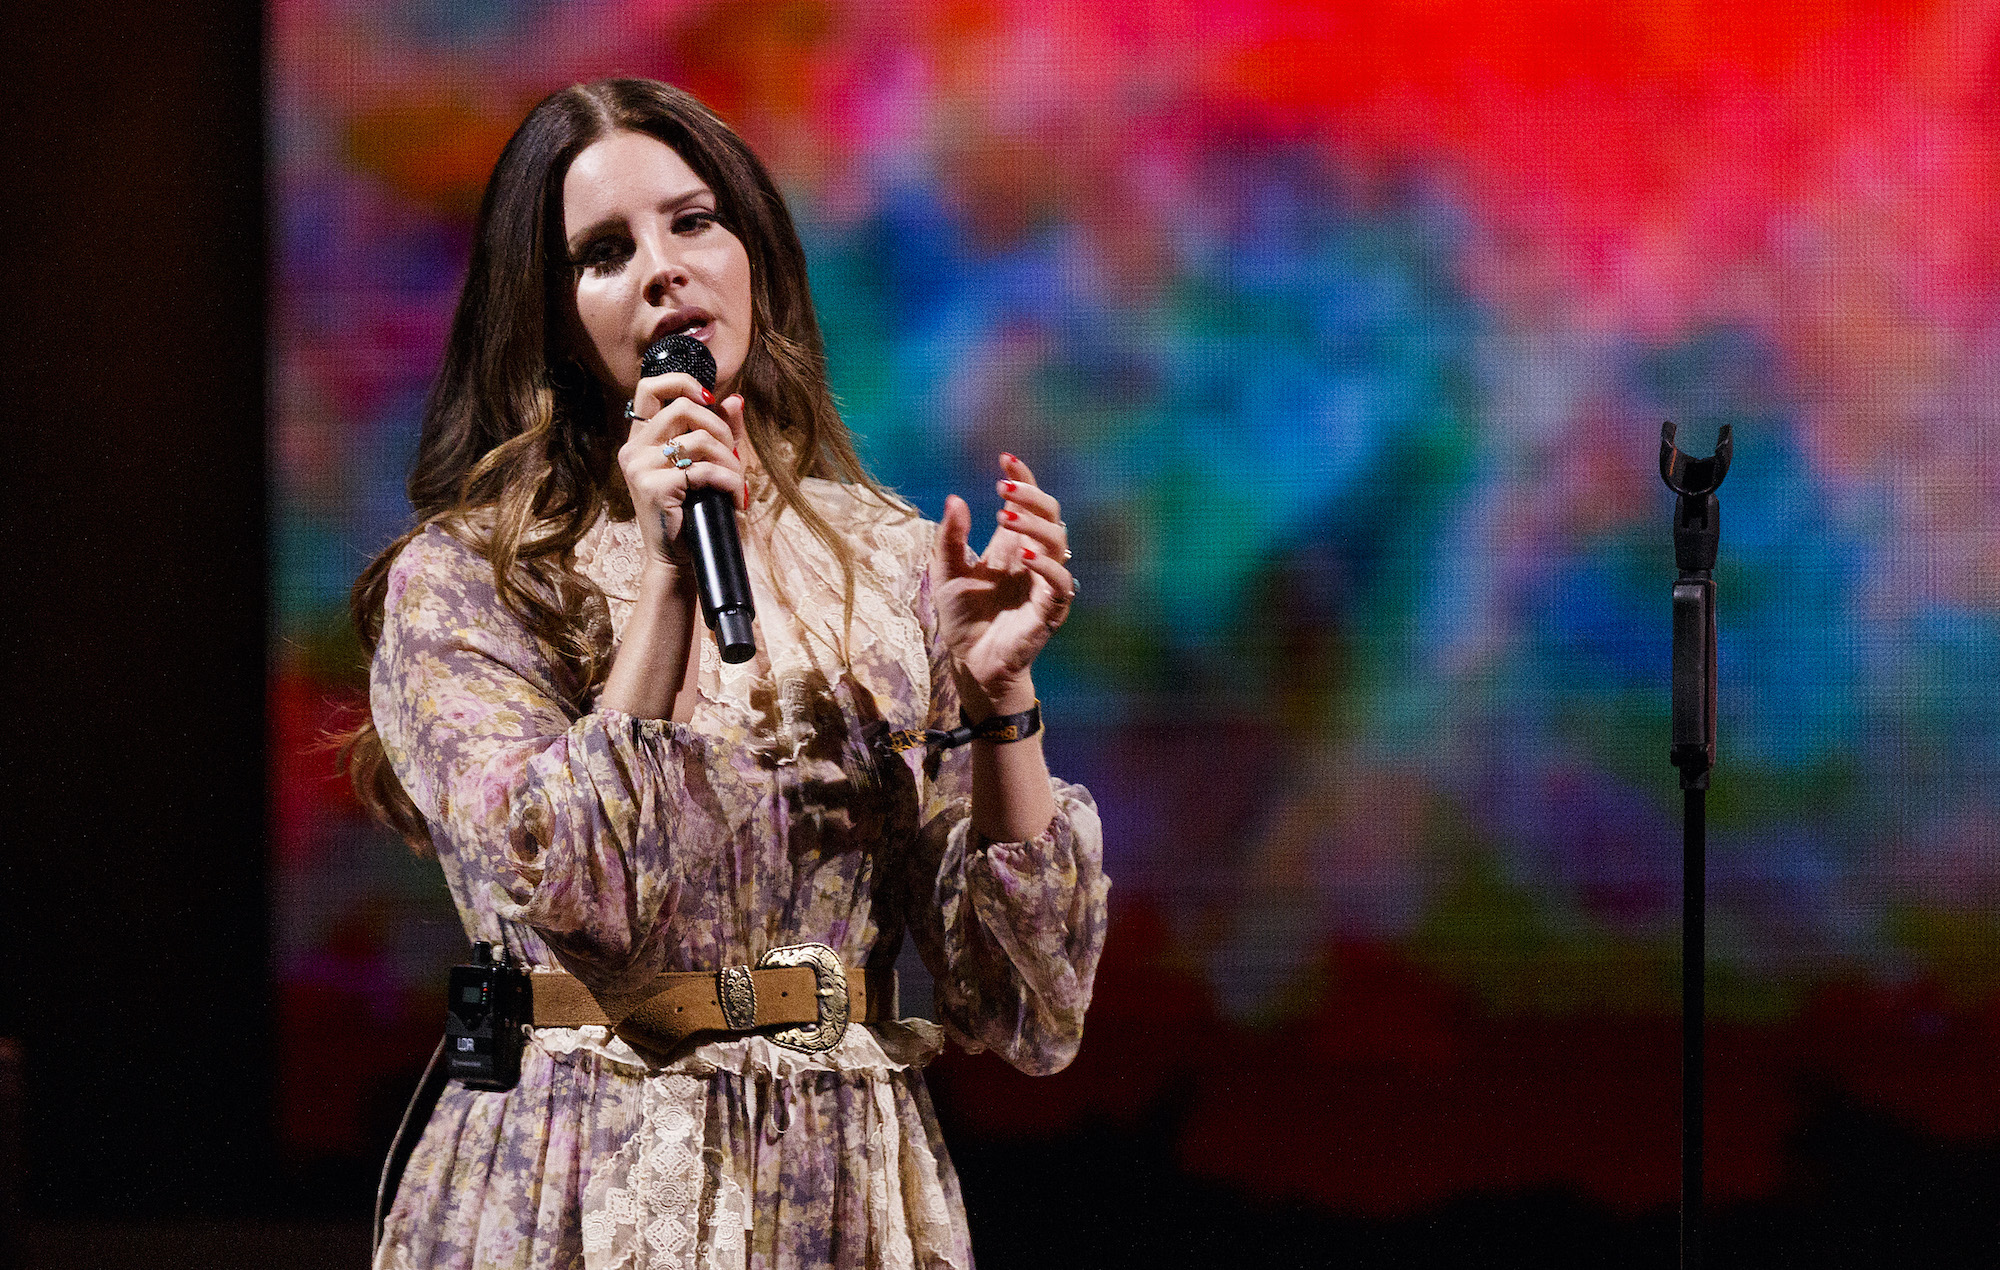 Lana Del Rey Shares Album Update From Video Set Of Her New Single